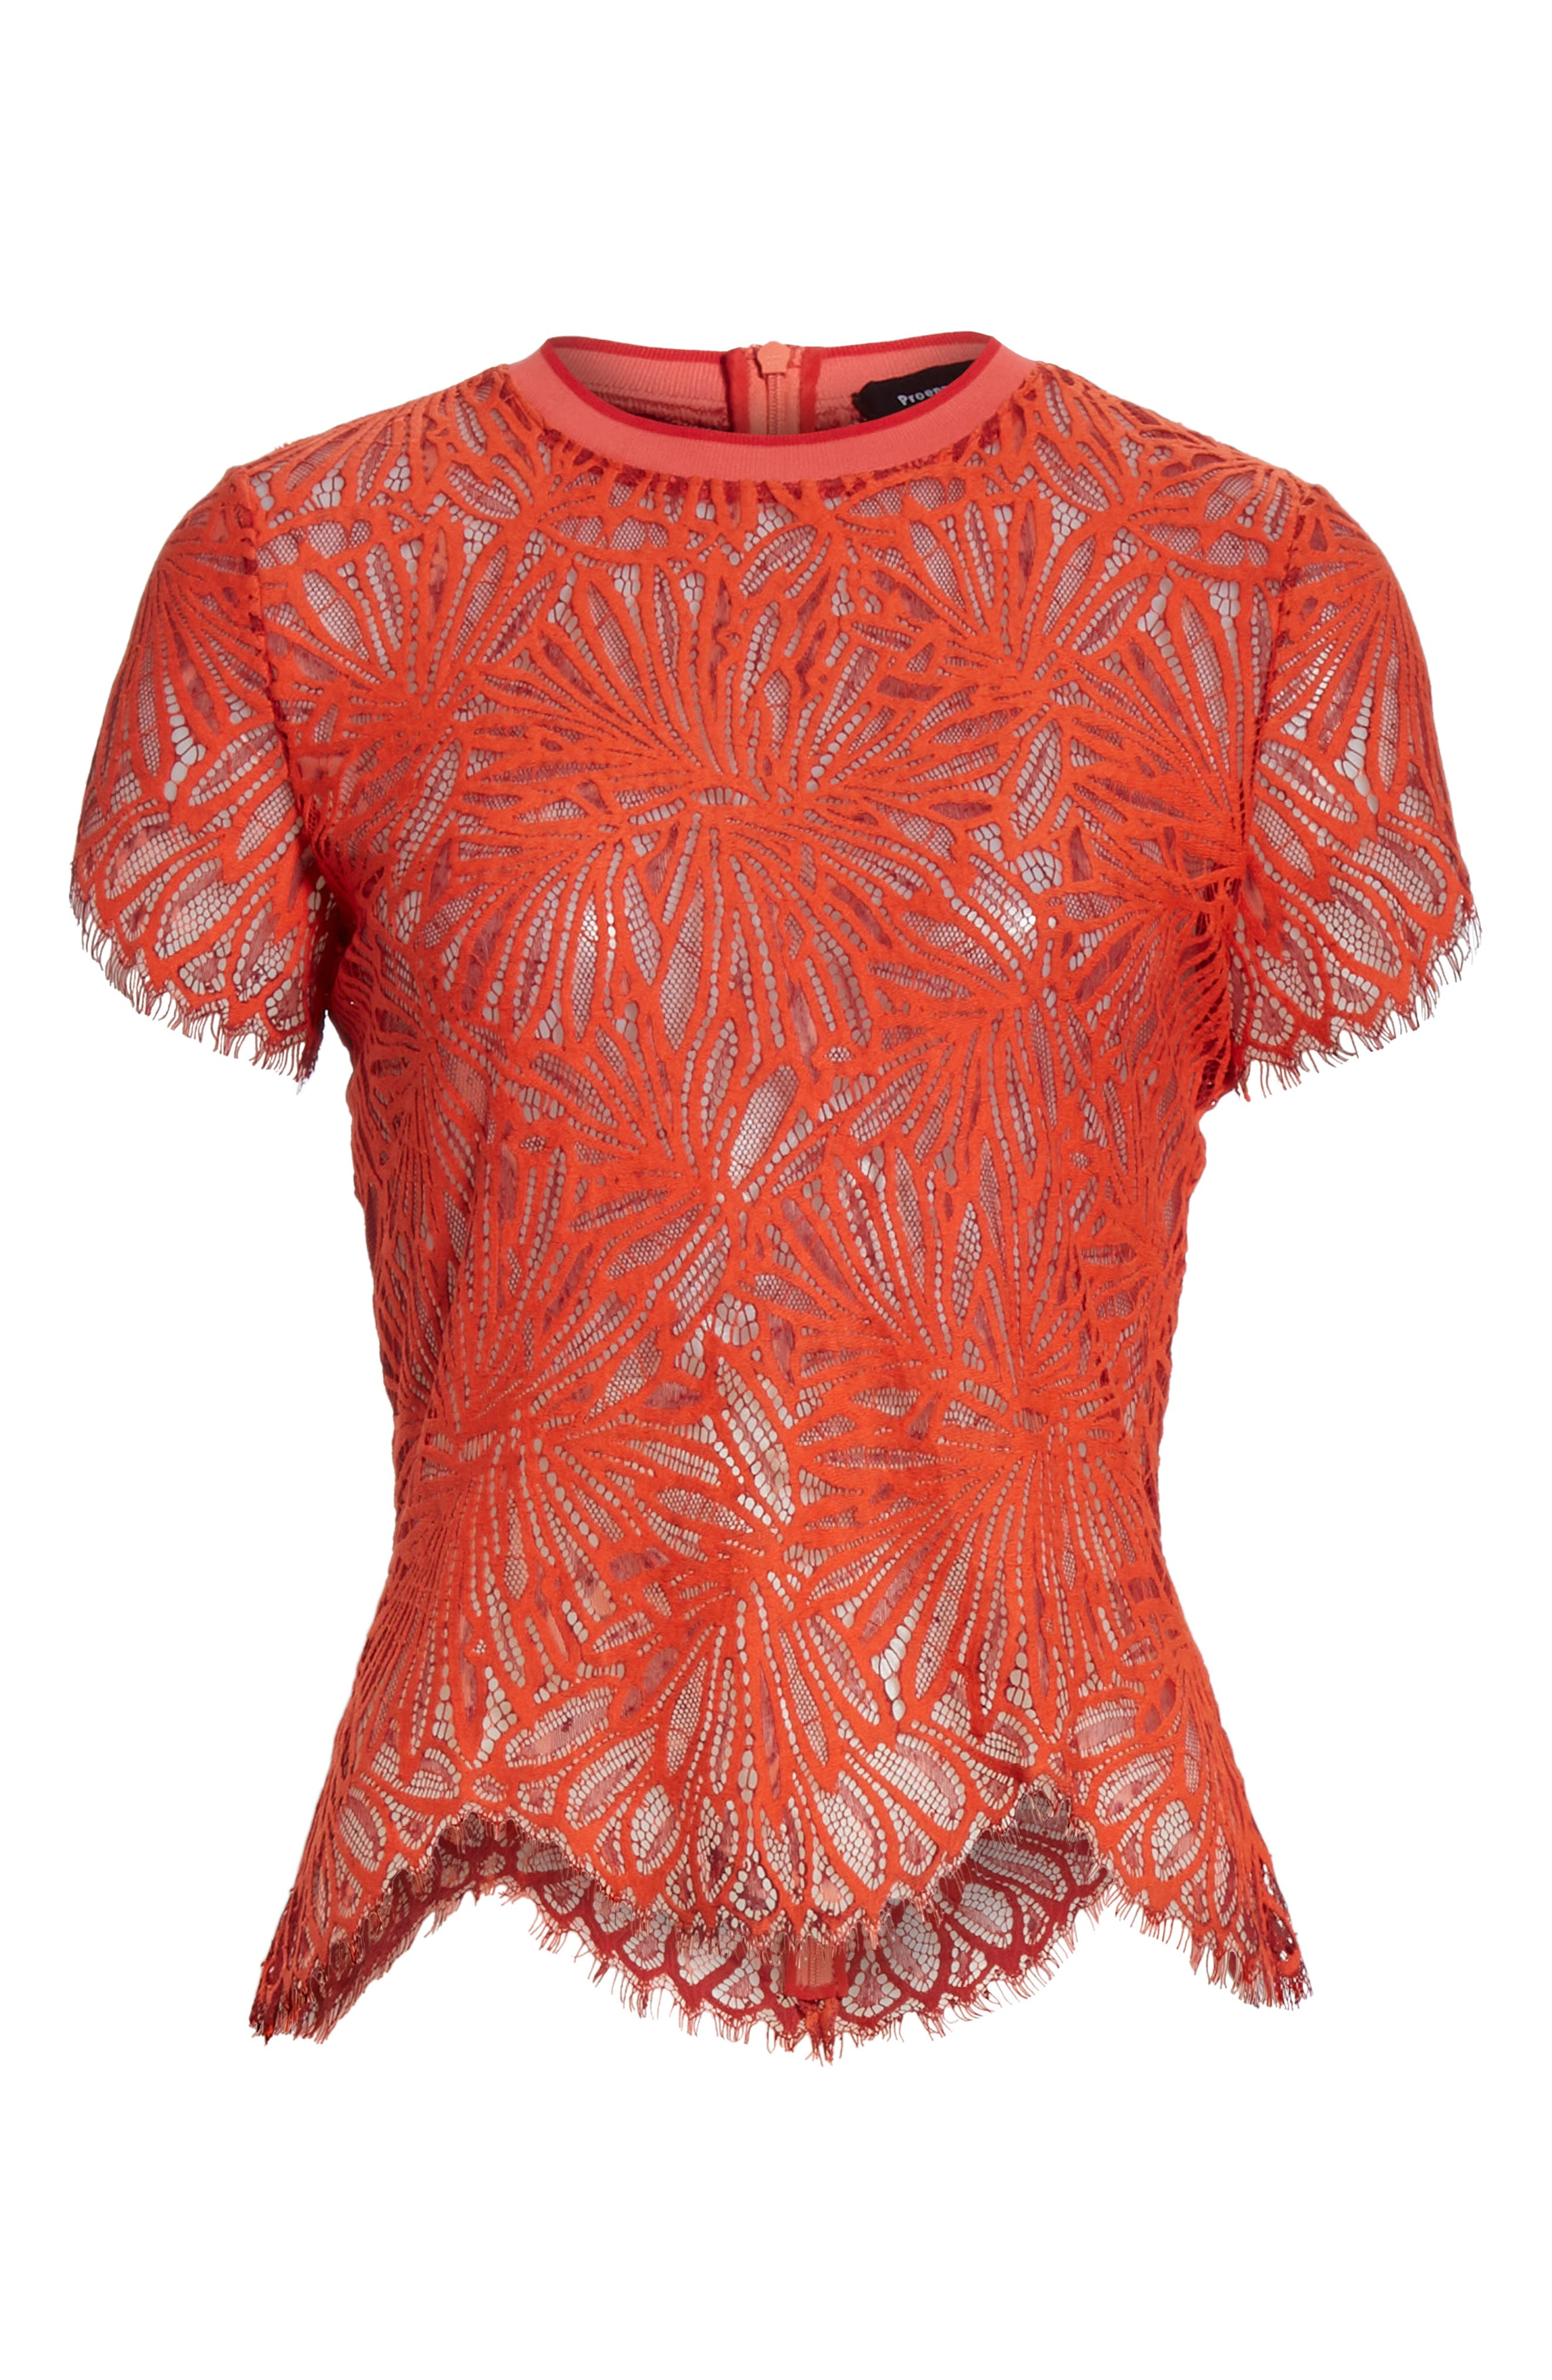 PROENZA SCHOULER,                             Scalloped Stretch Lace Top,                             Alternate thumbnail 6, color,                             TANGERINE